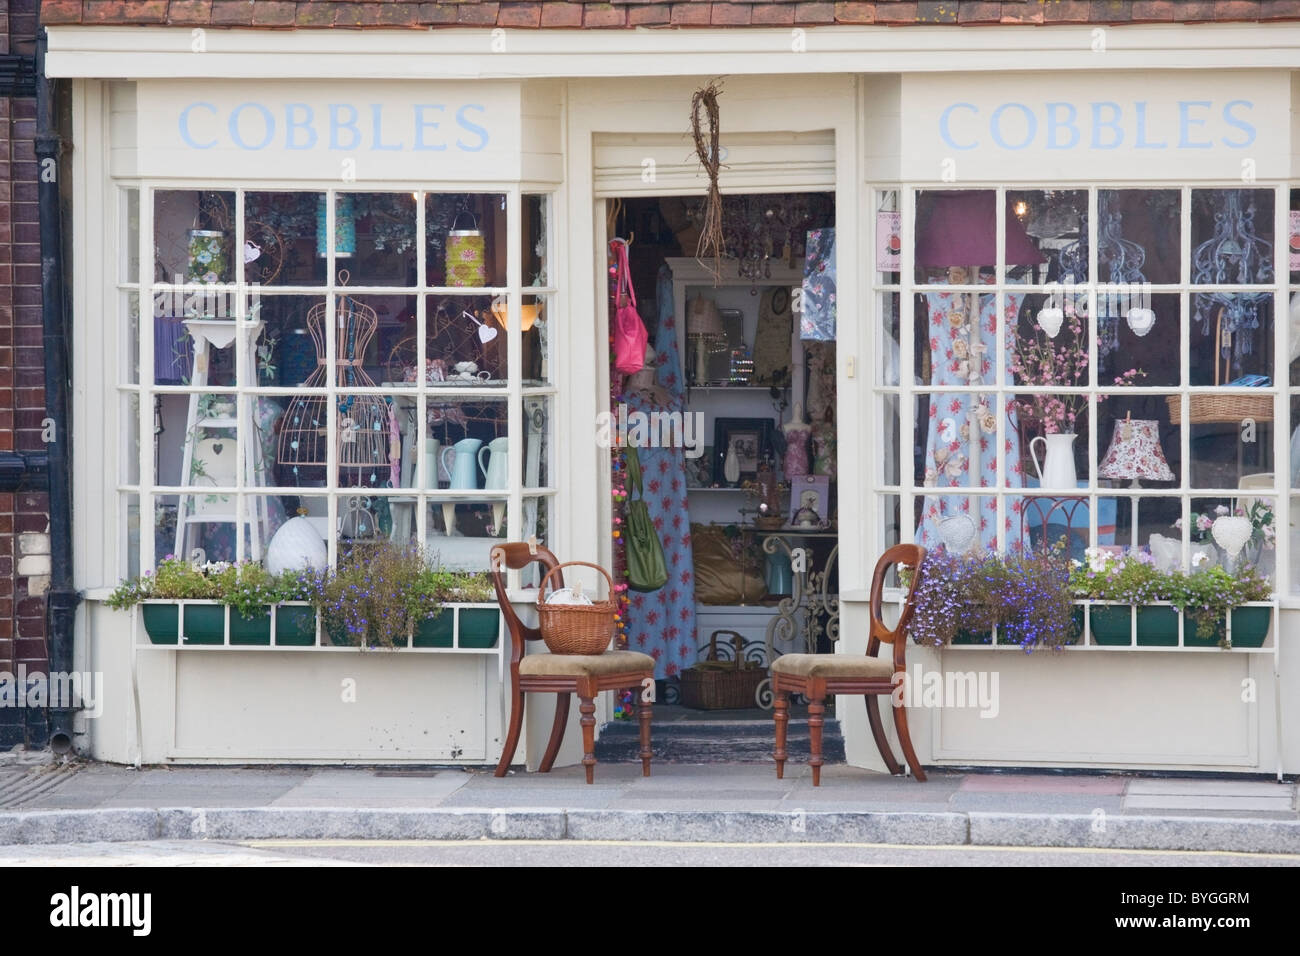 Shop front in Old Portsmouth, Hampshire, England, UK - Stock Image